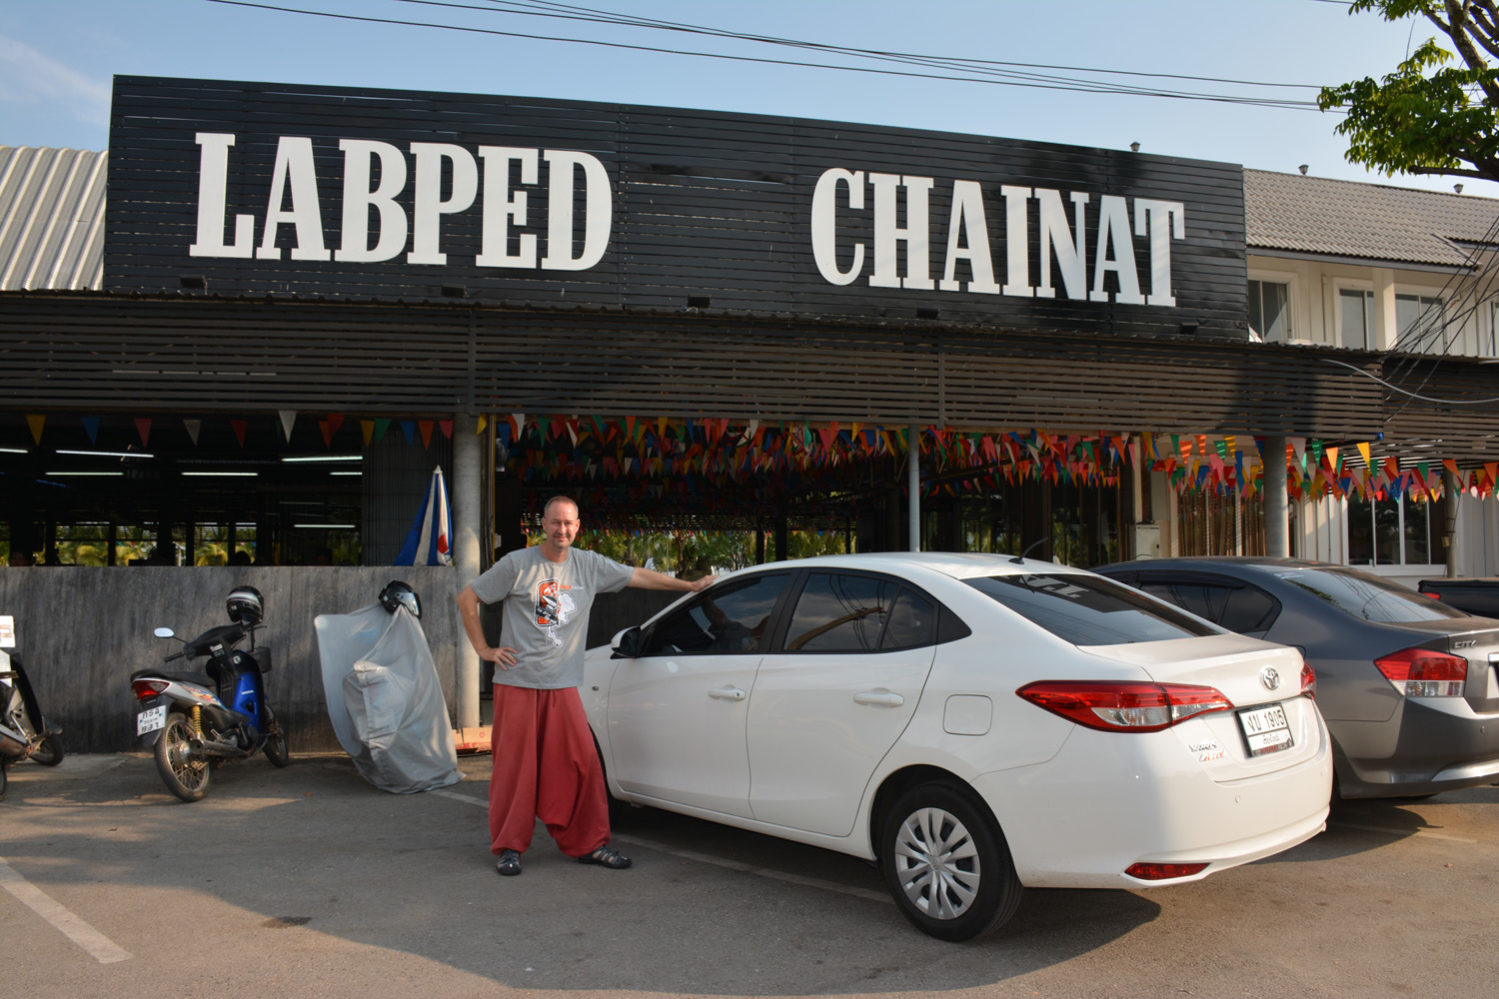 We would like to recommend LABPED CHAINAT.